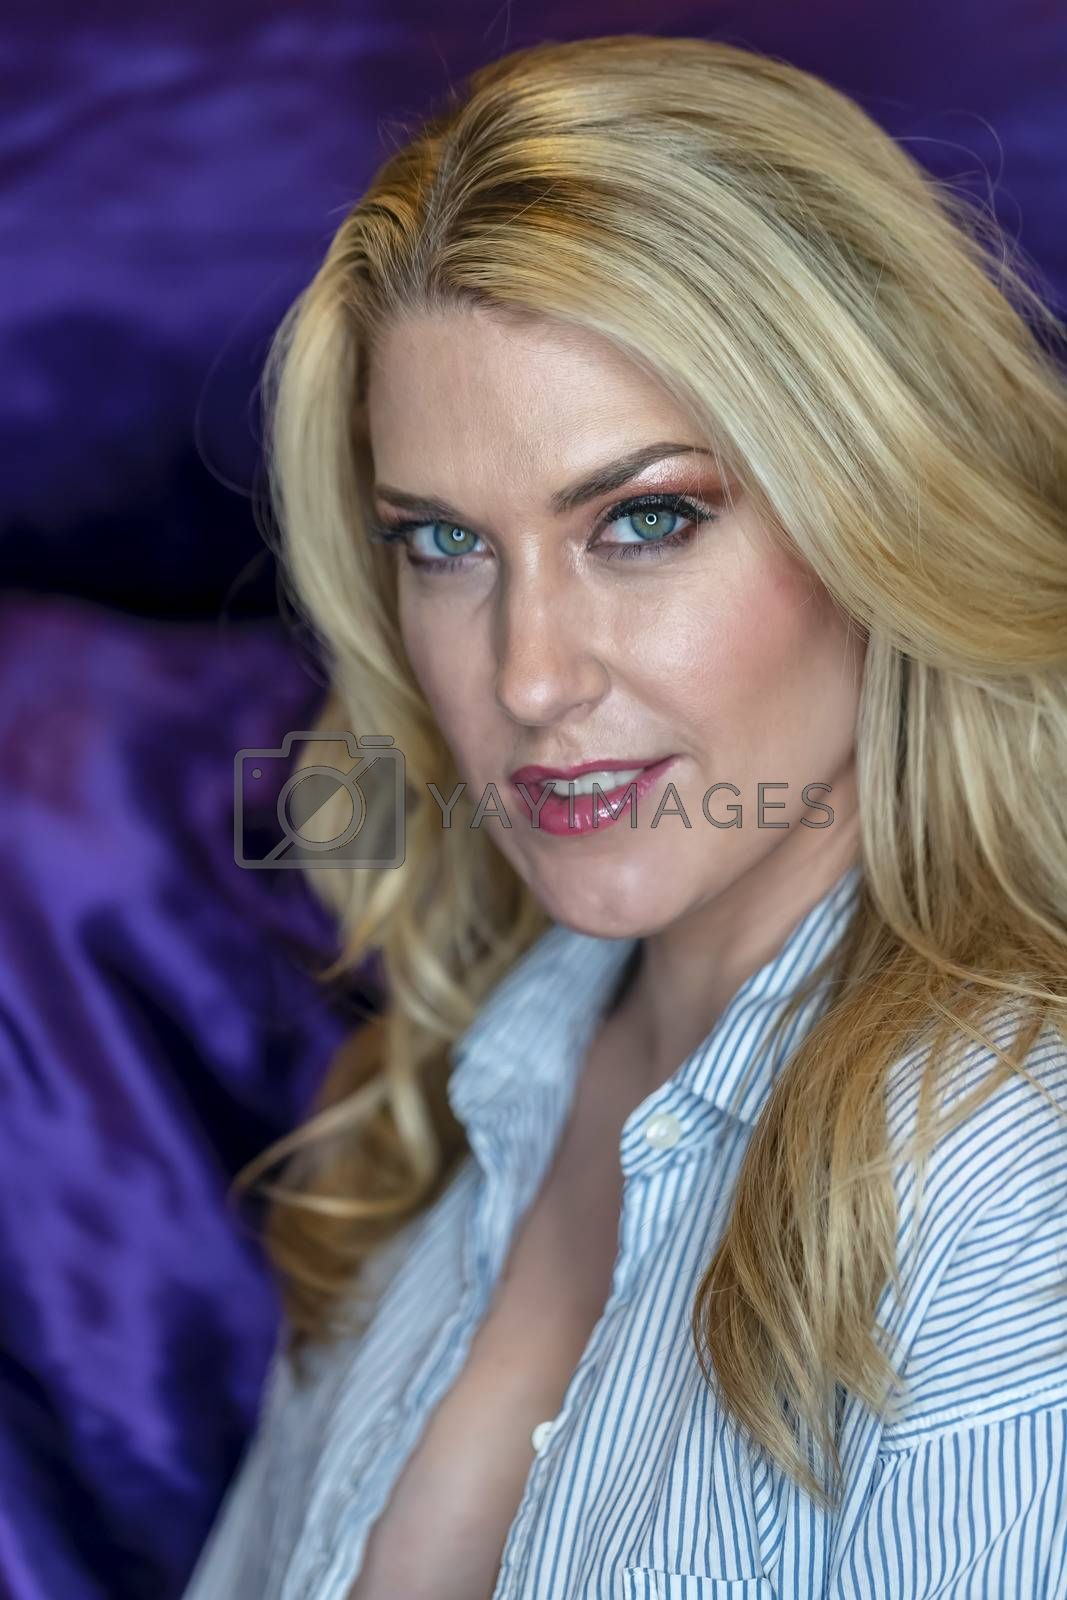 Royalty free image of Blonde Lingerie Model by actionsports